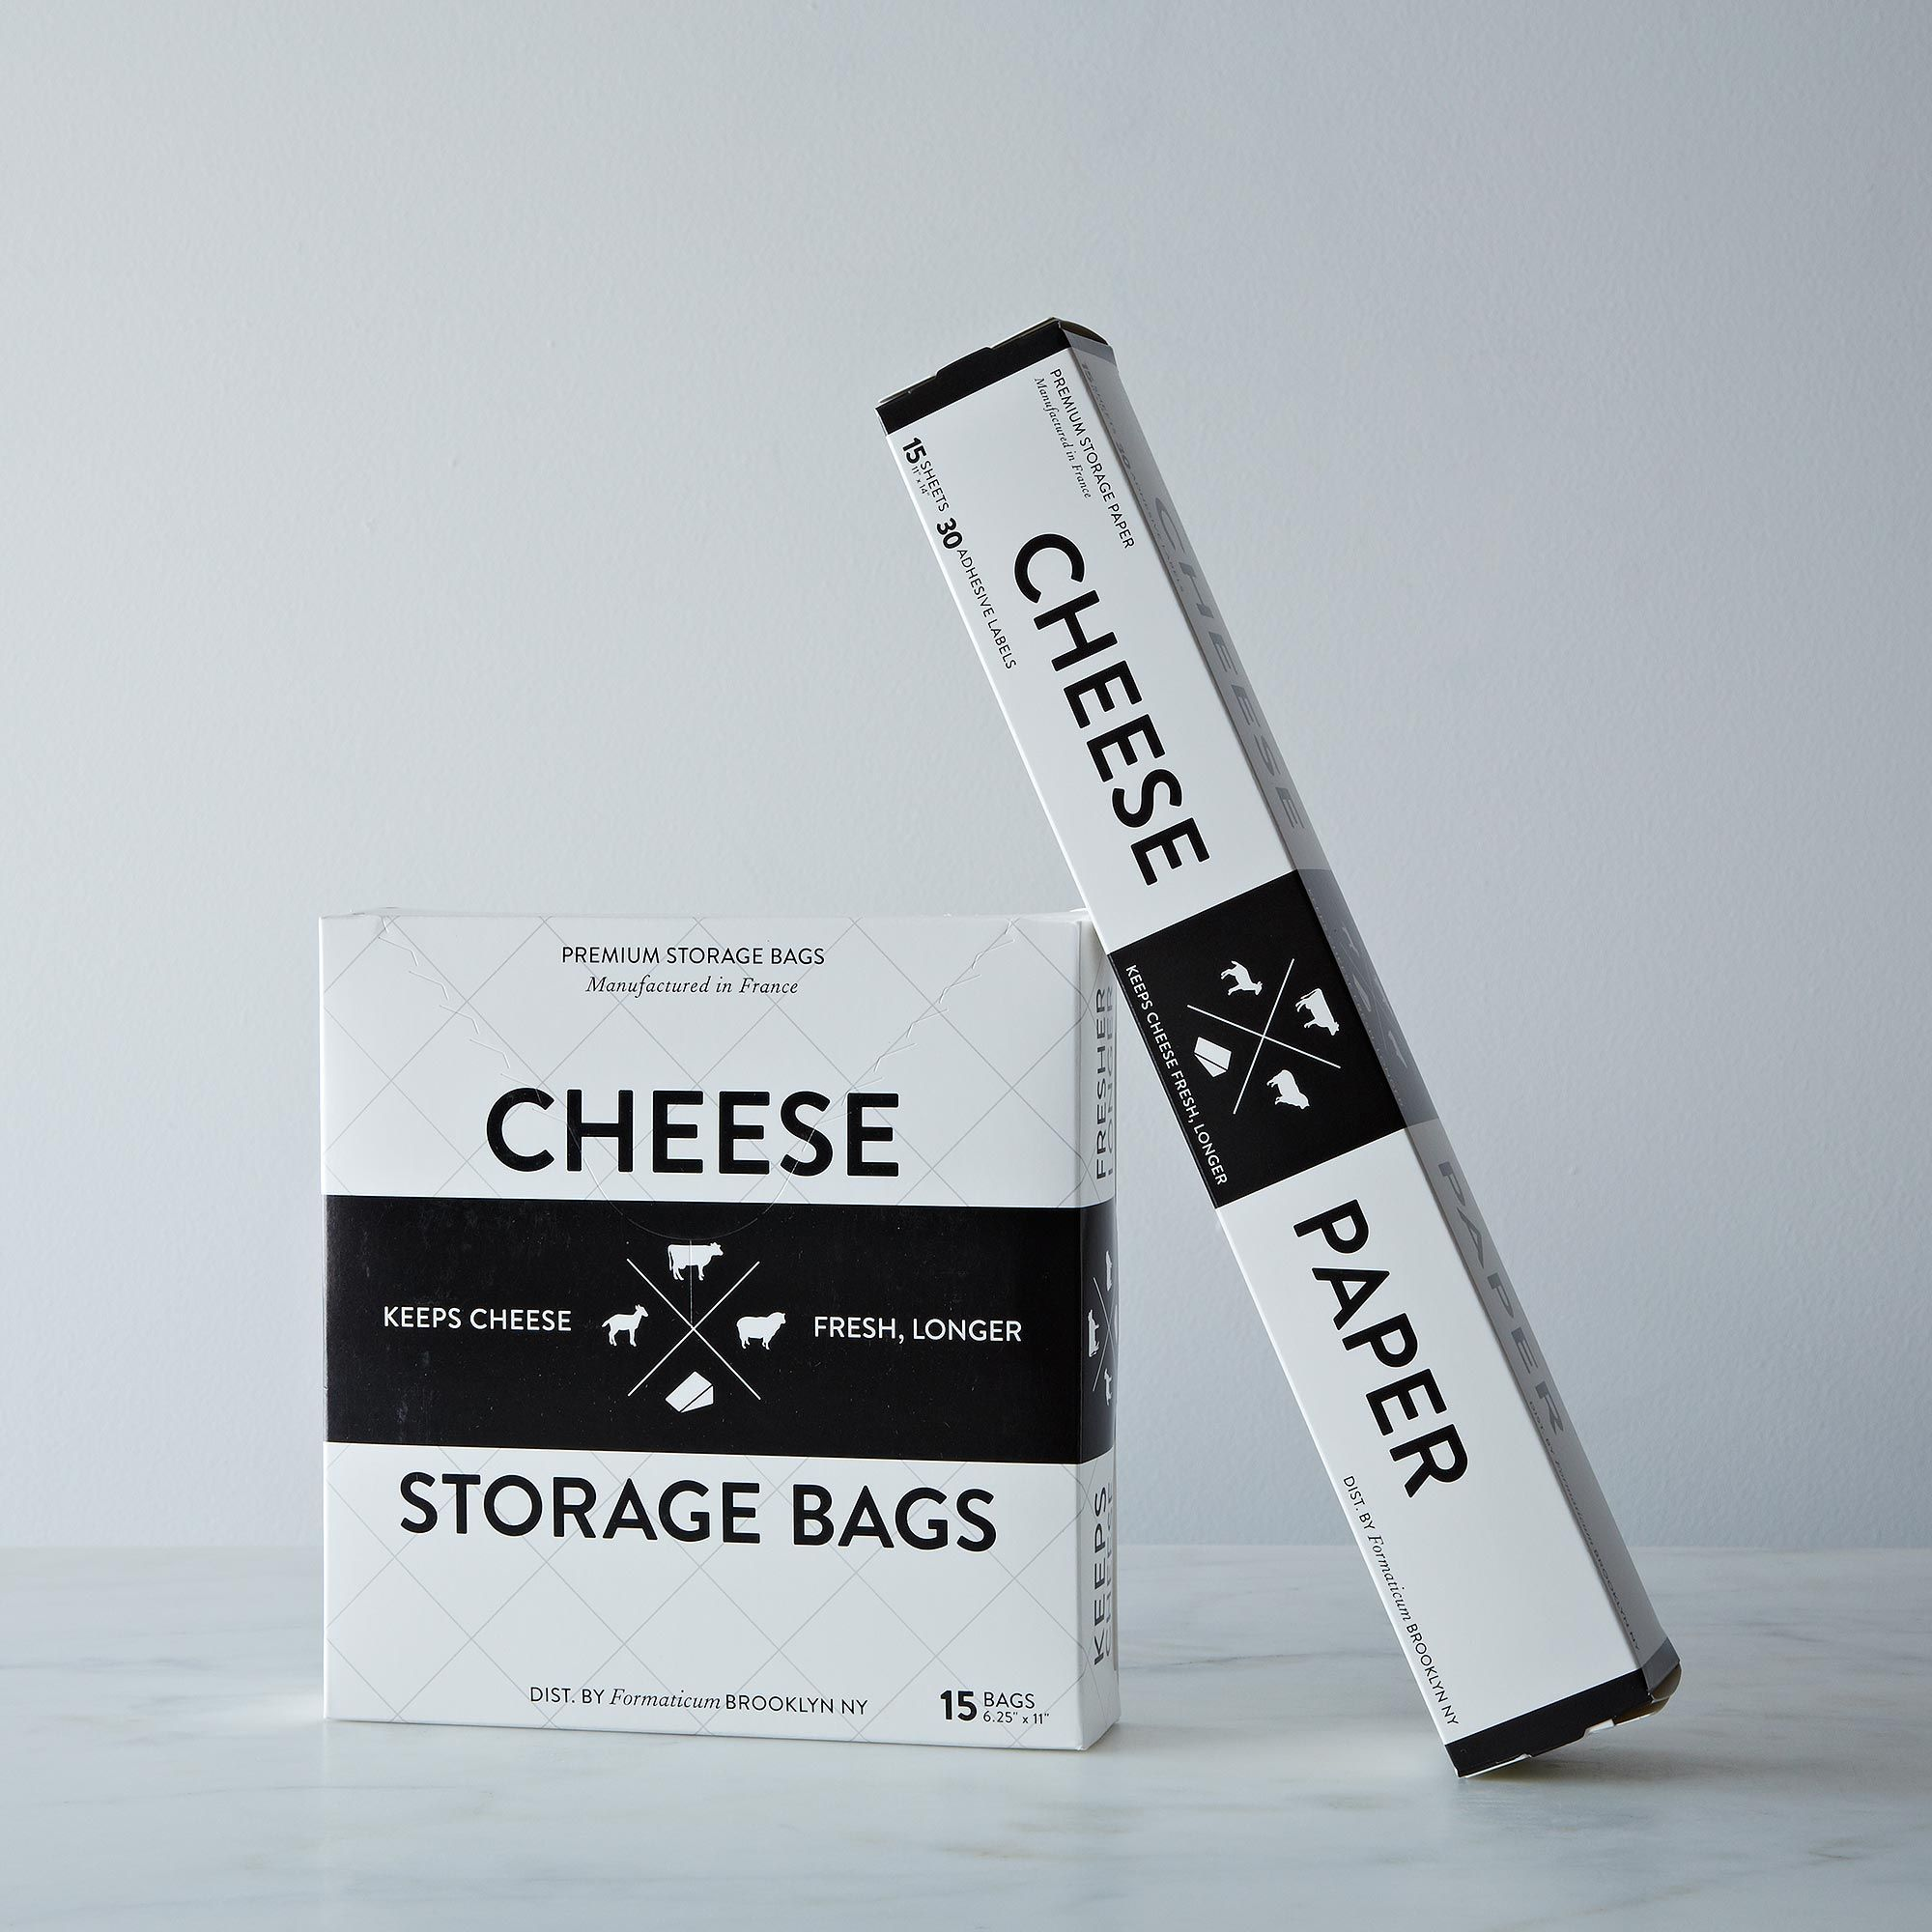 F0f7b025-3350-48b3-8a33-3d26edaa4b75--2013-0920_formaticum_cheese-storage-paper-and-bags-007